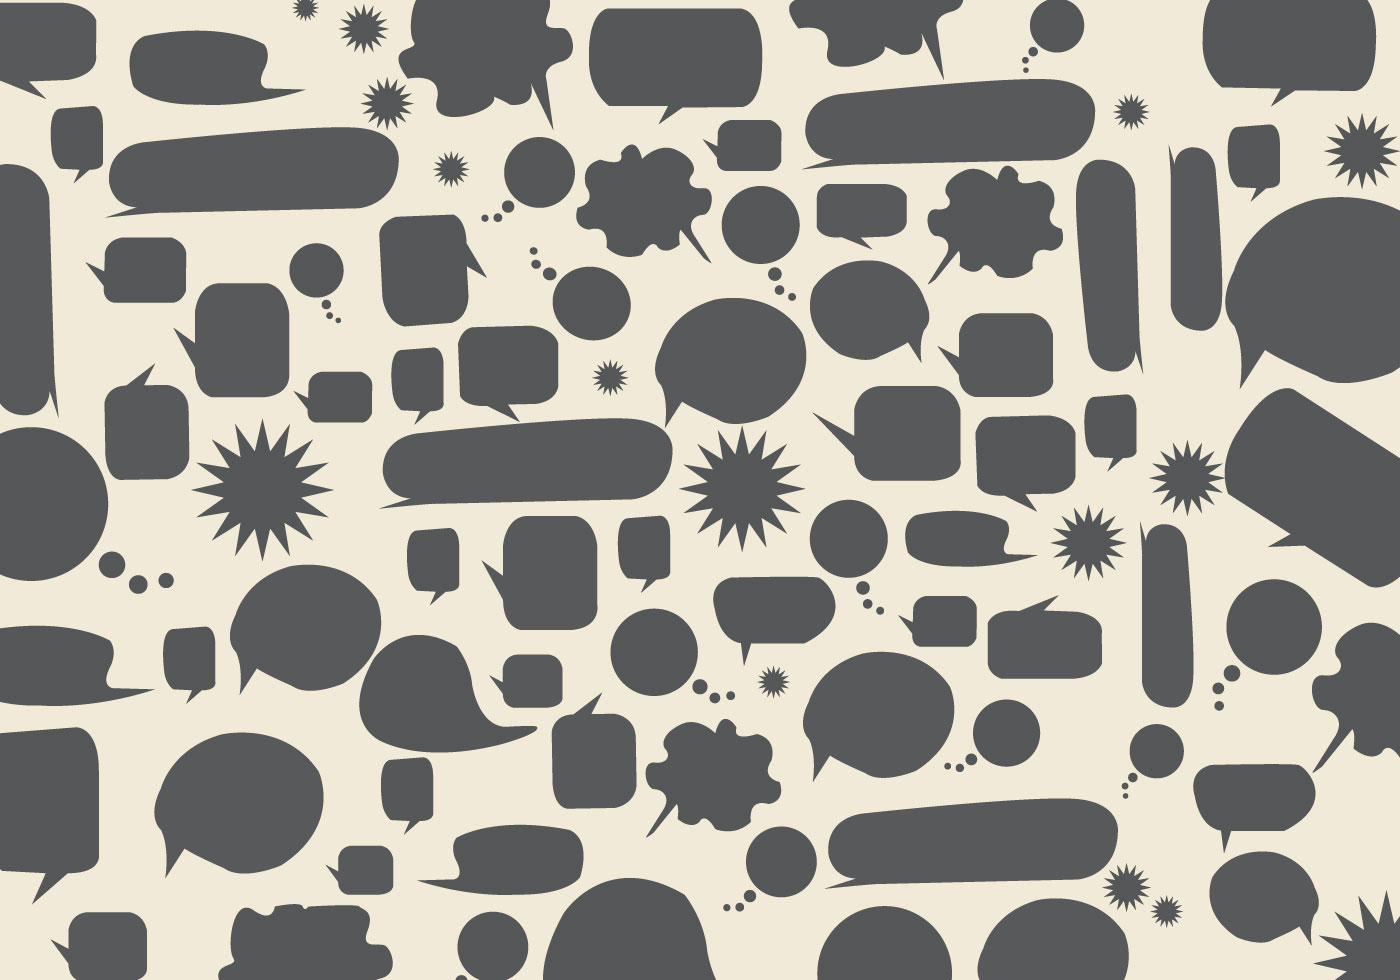 Cute Chat Wallpaper For Whatsapp Free Speech Bubbles Background Vector Download Free